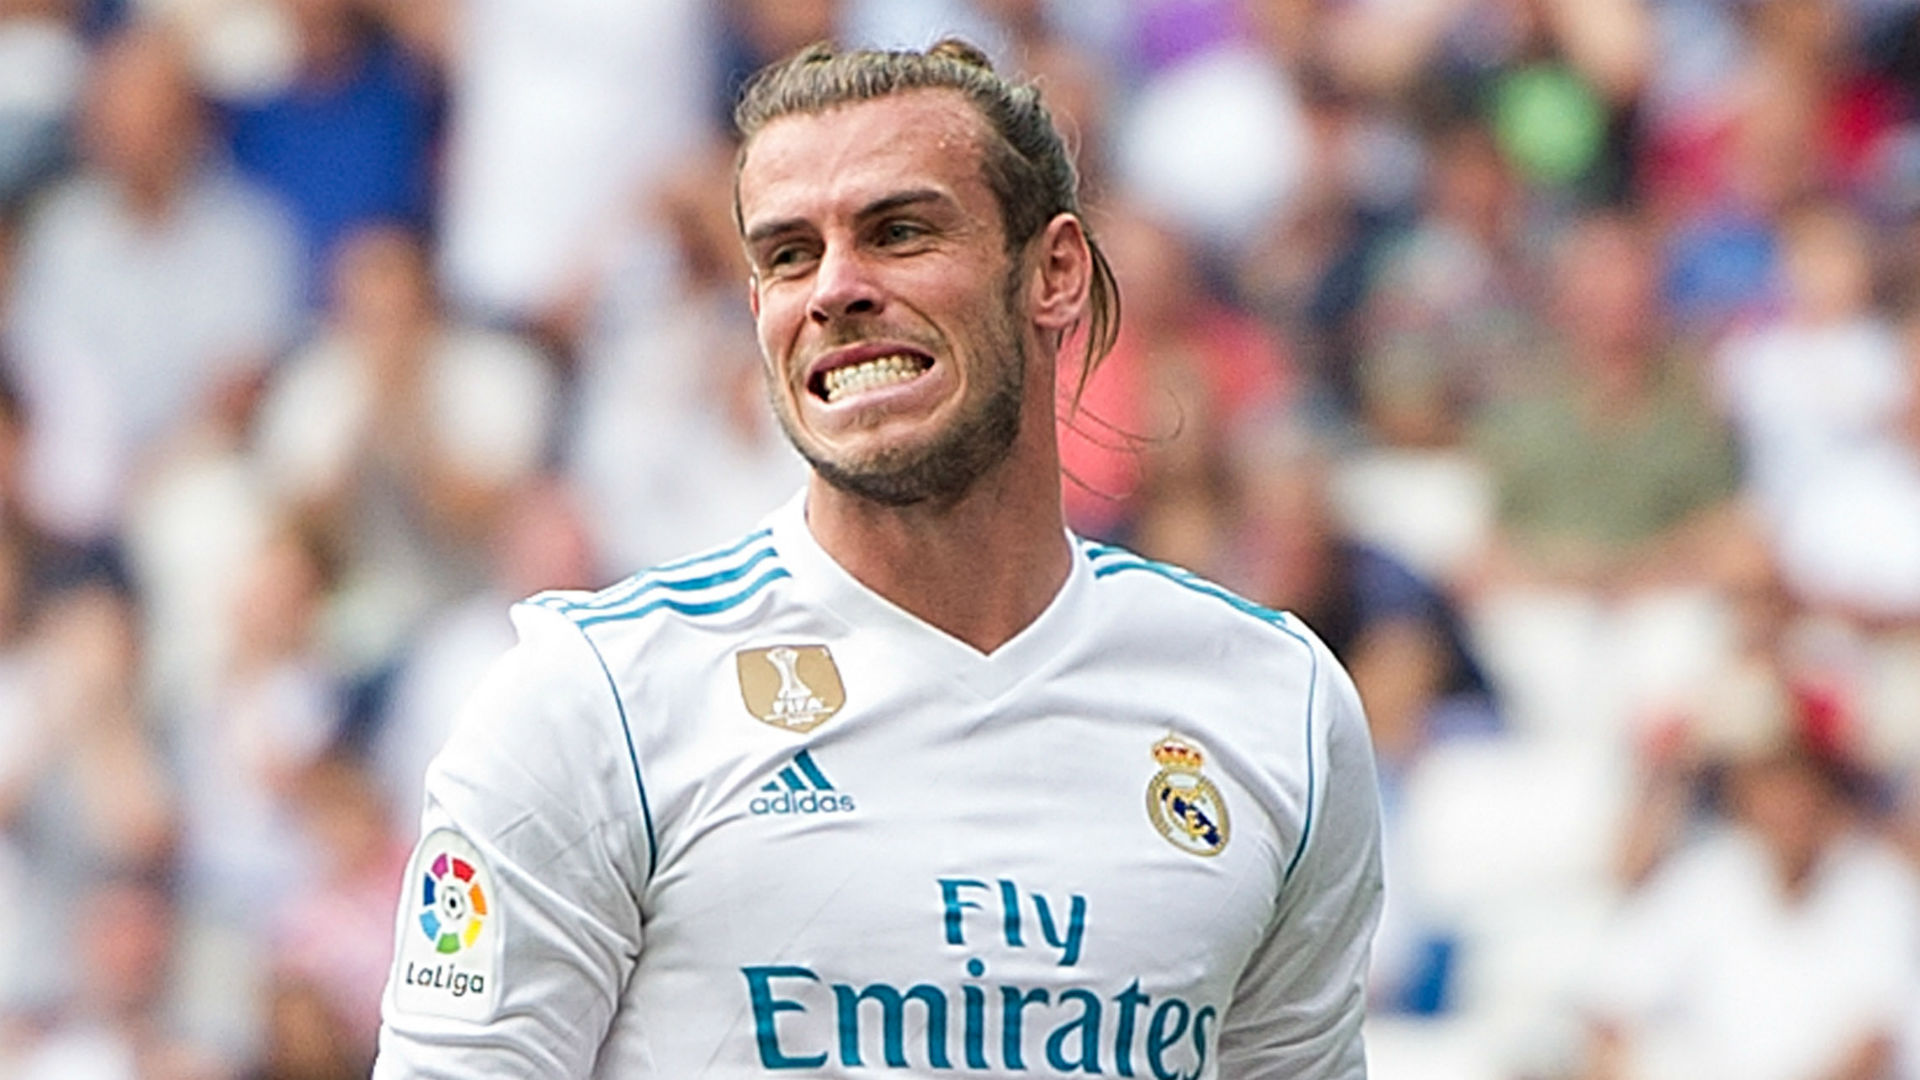 Real Madrid's Gareth Bale: 'There was an argument for joining Manchester United'